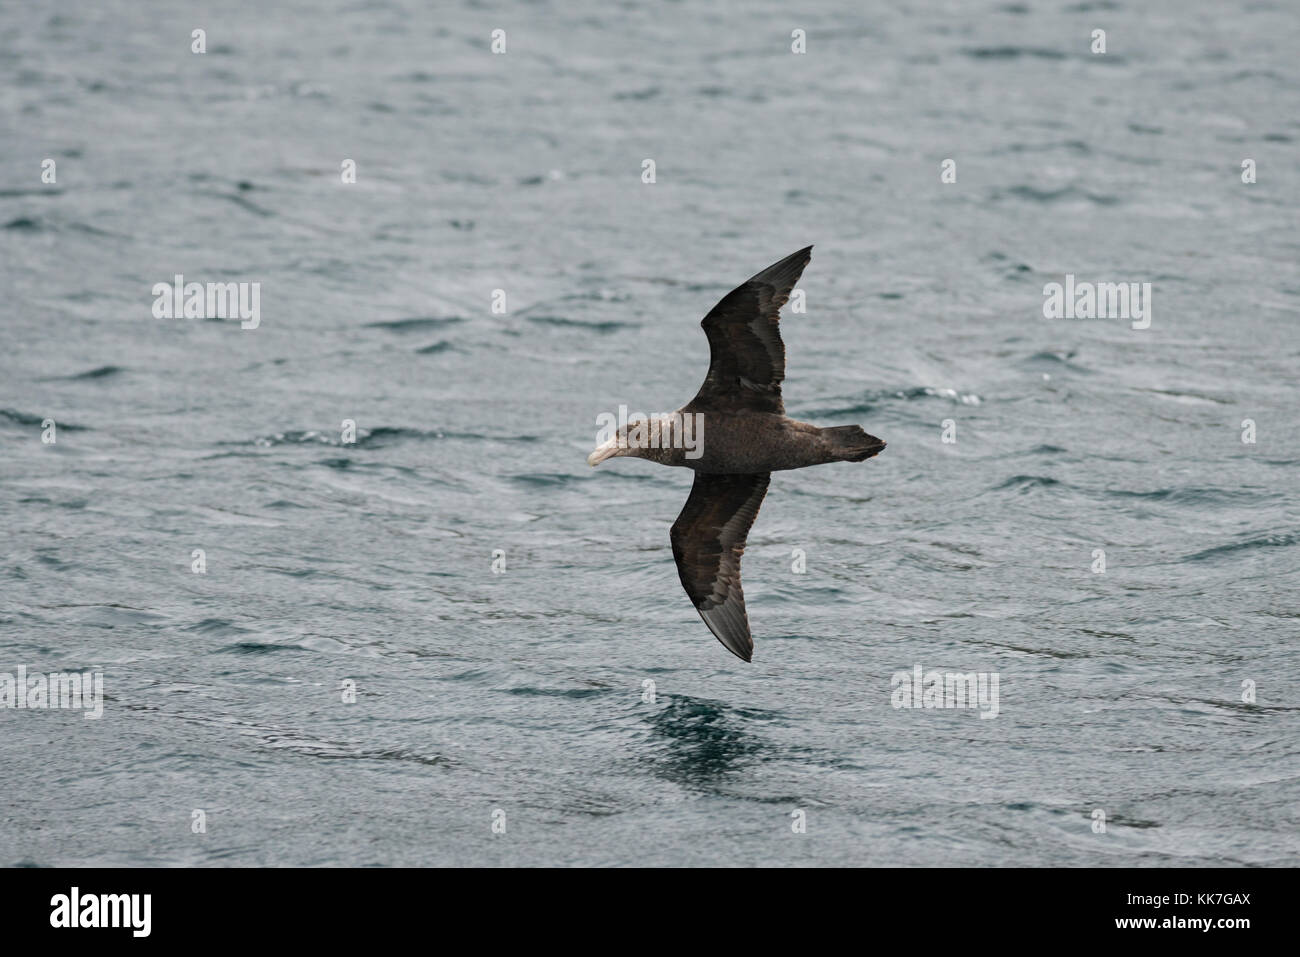 Southern Giant Petrel flying over the waters of the Straits of Magellan, Chile - Stock Image